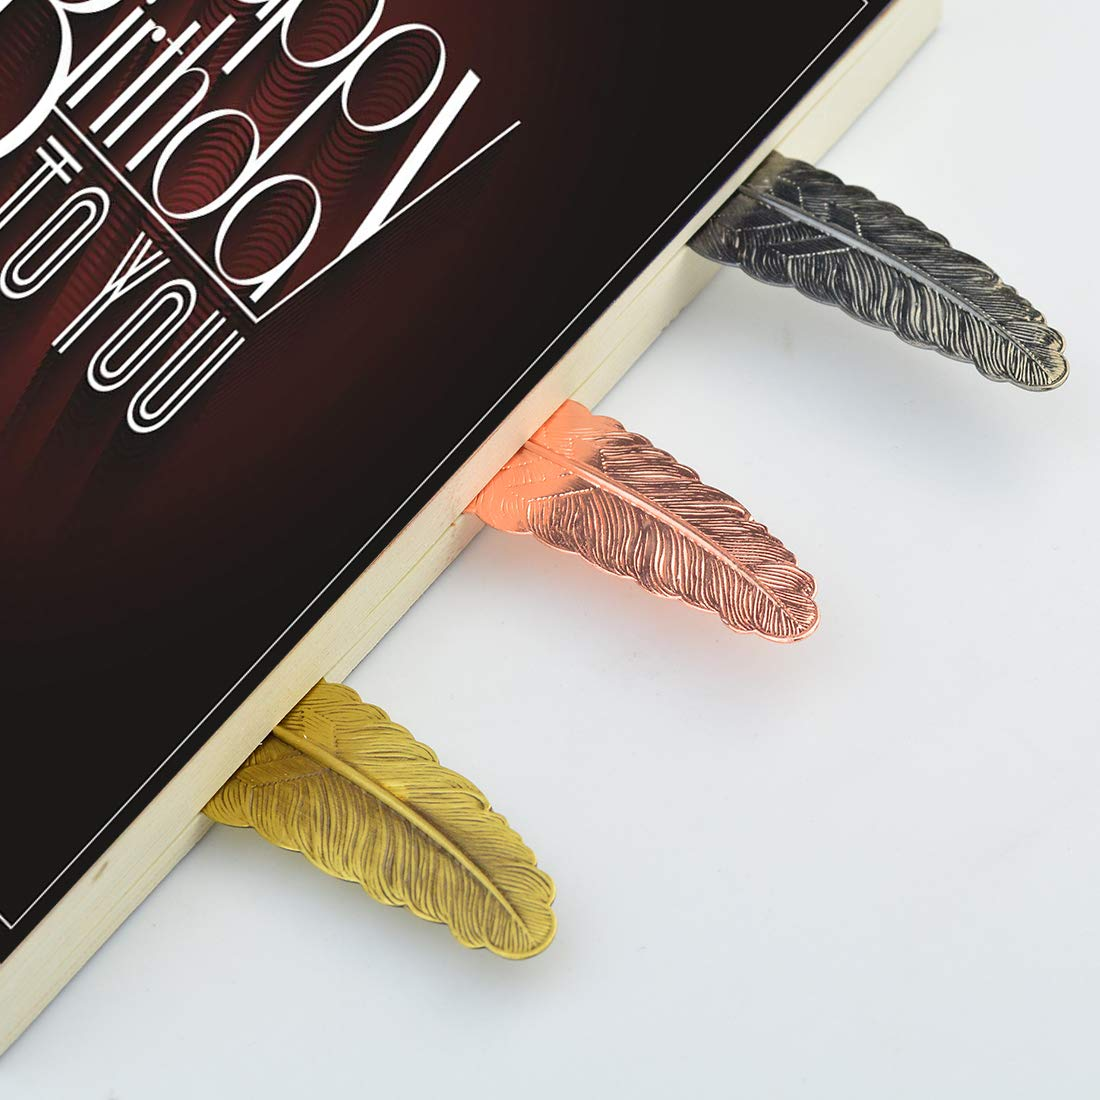 Yolyoo 10pcs Feather Bookmarks Vintage Feather Metal Bookmarks Classical Assorted Feather Shaped Bookmarks for Adults&Kids&Book Collectors Lovers